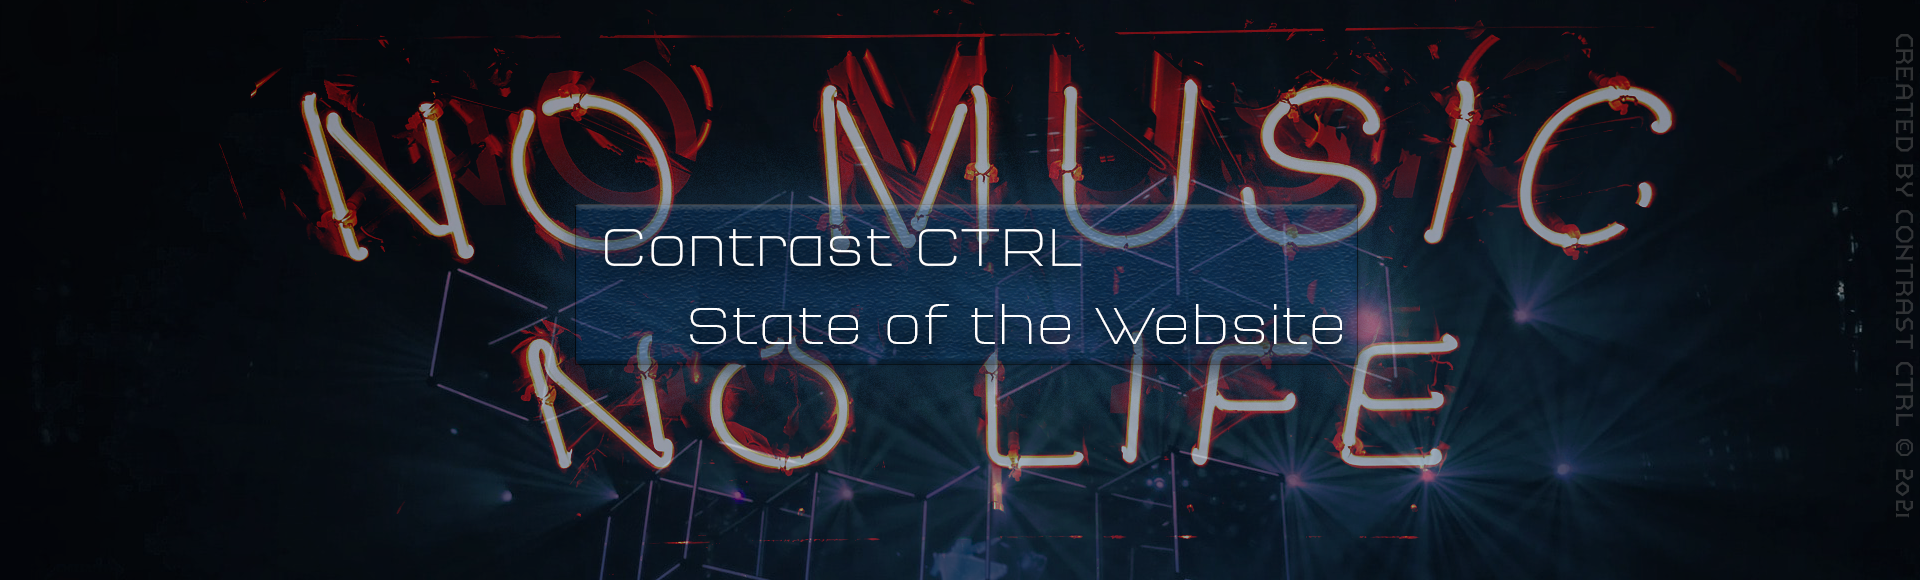 State of Contrast CTRL 2021